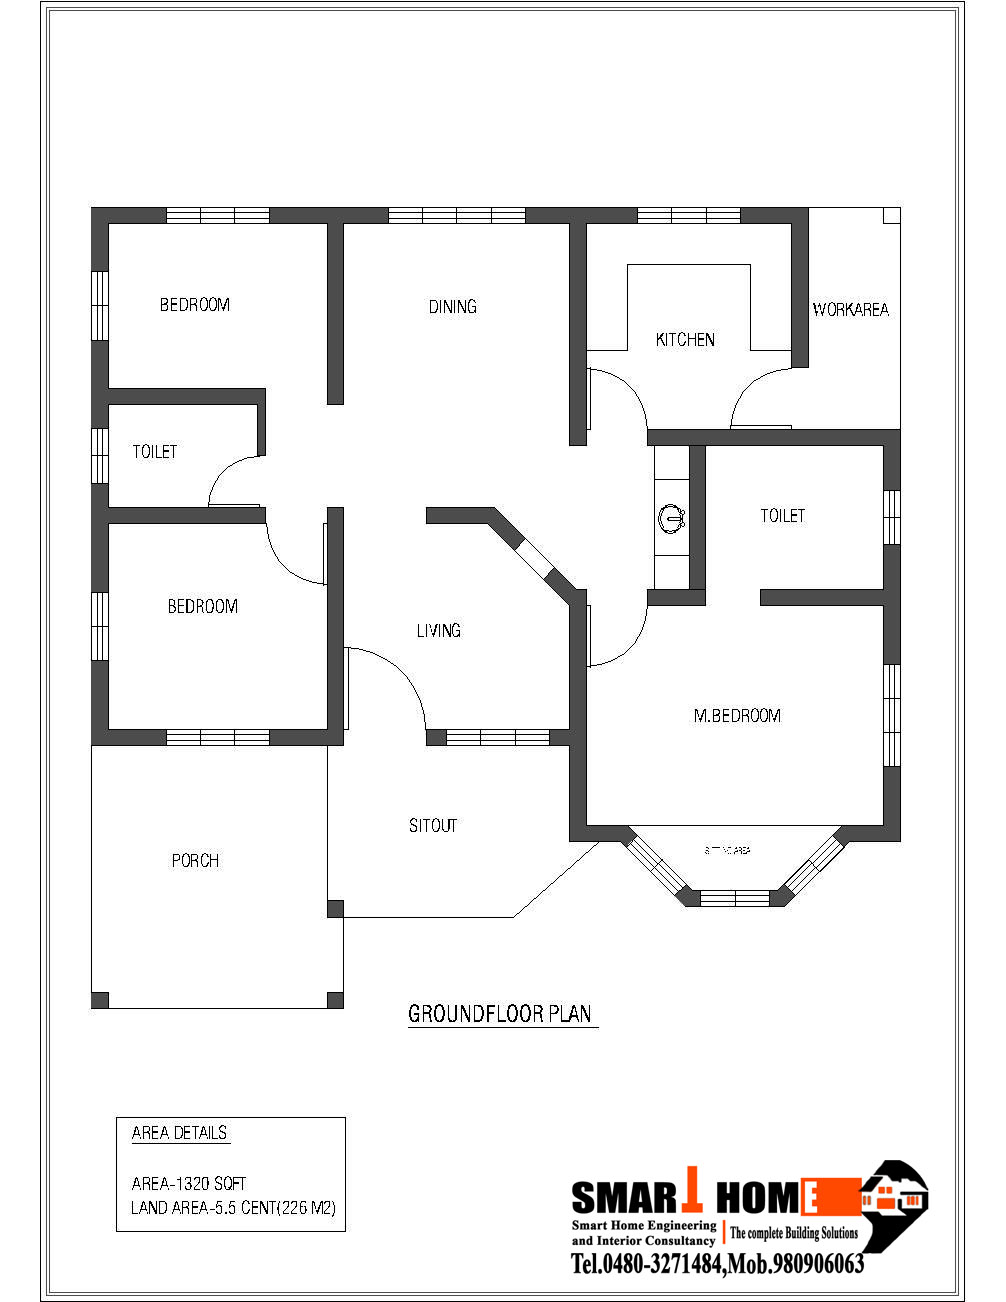 House photos and plans may 2012 for House plans with photos